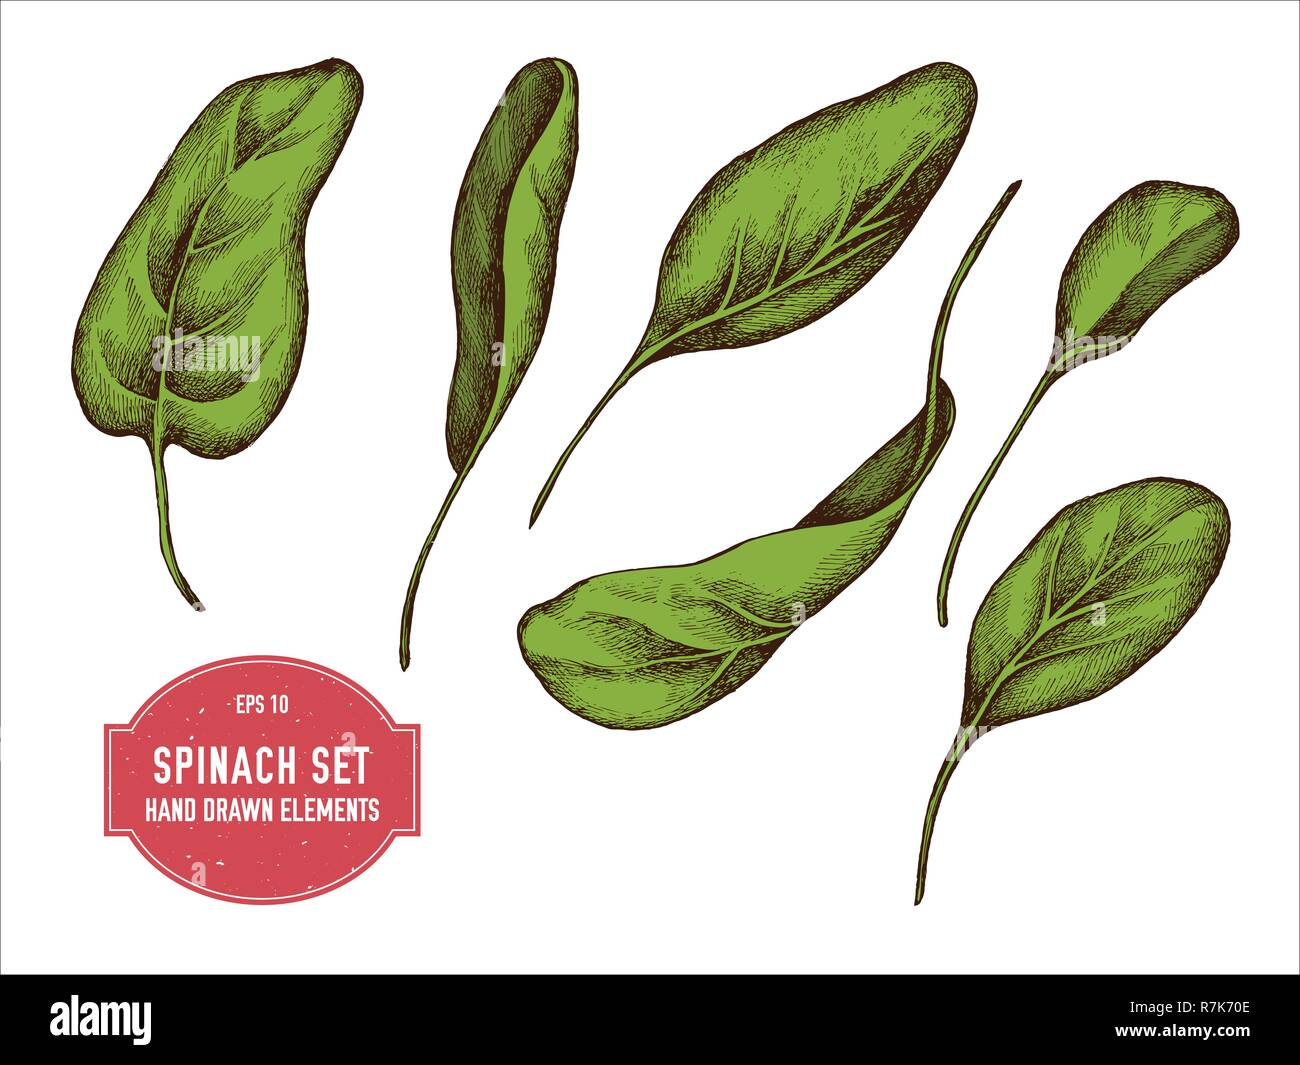 Spinach Stock Vector Images - Alamy